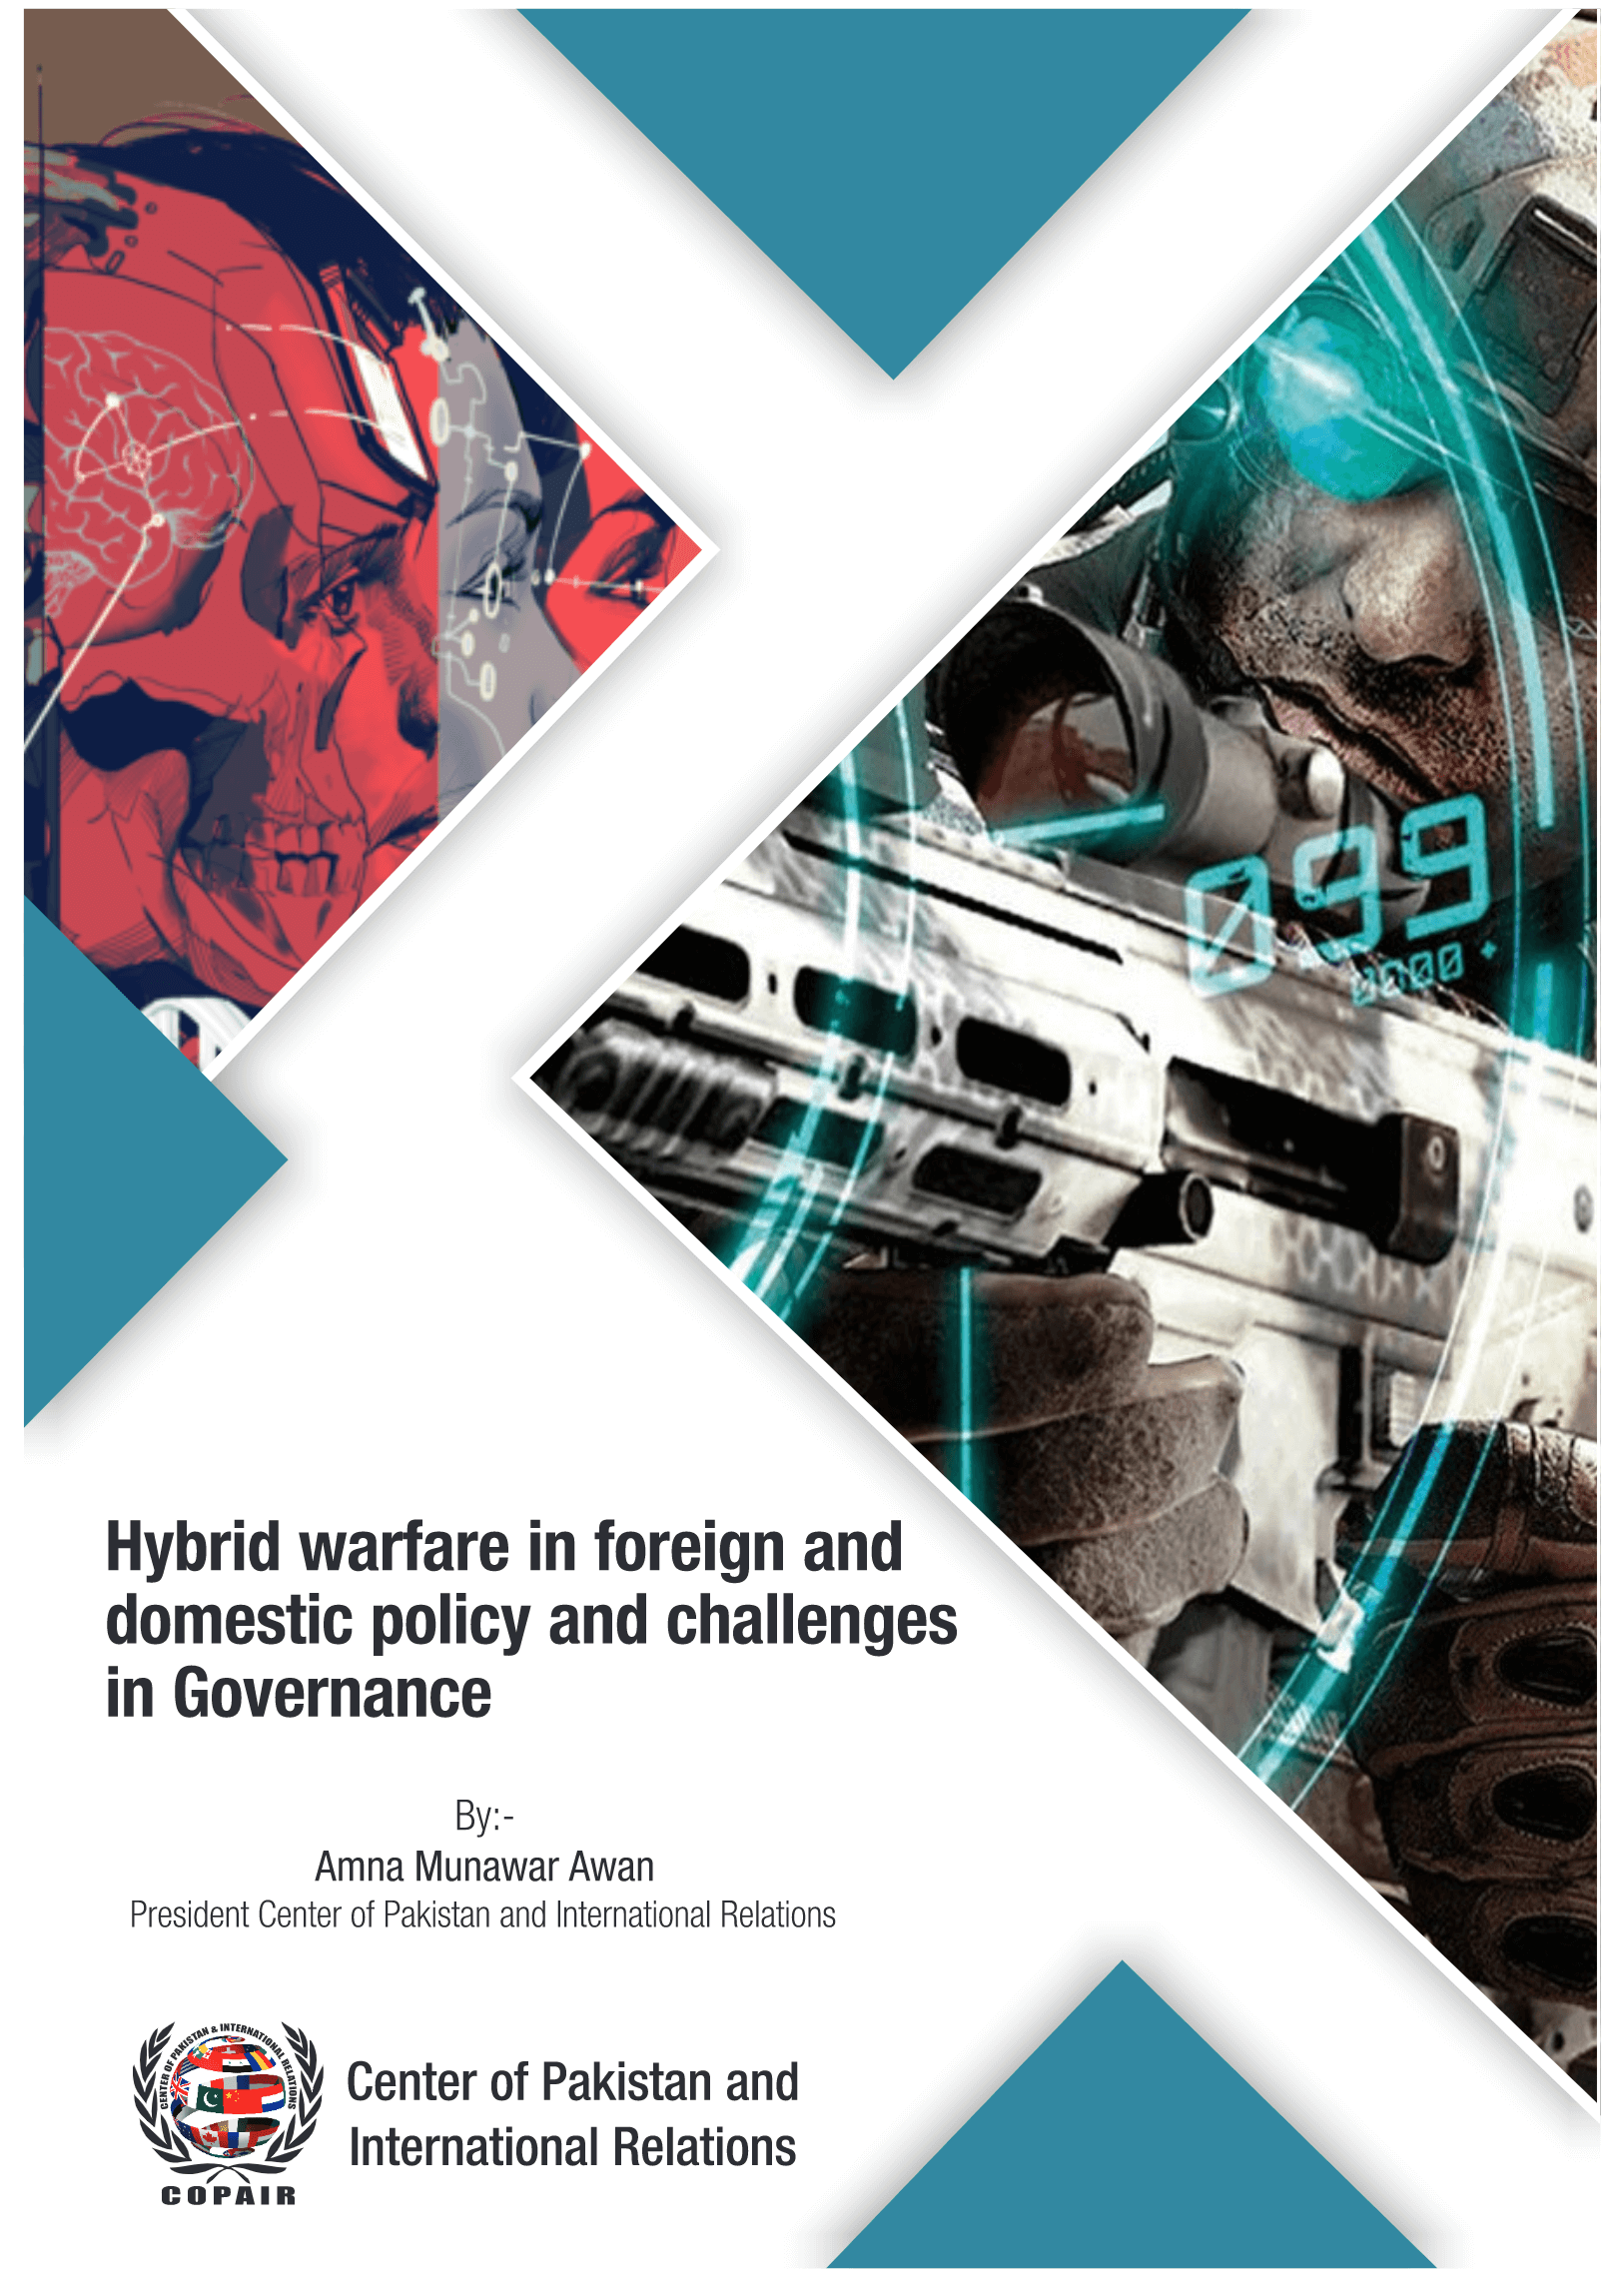 Hybrid warfare in foreign and domestic policy and challenges in governance